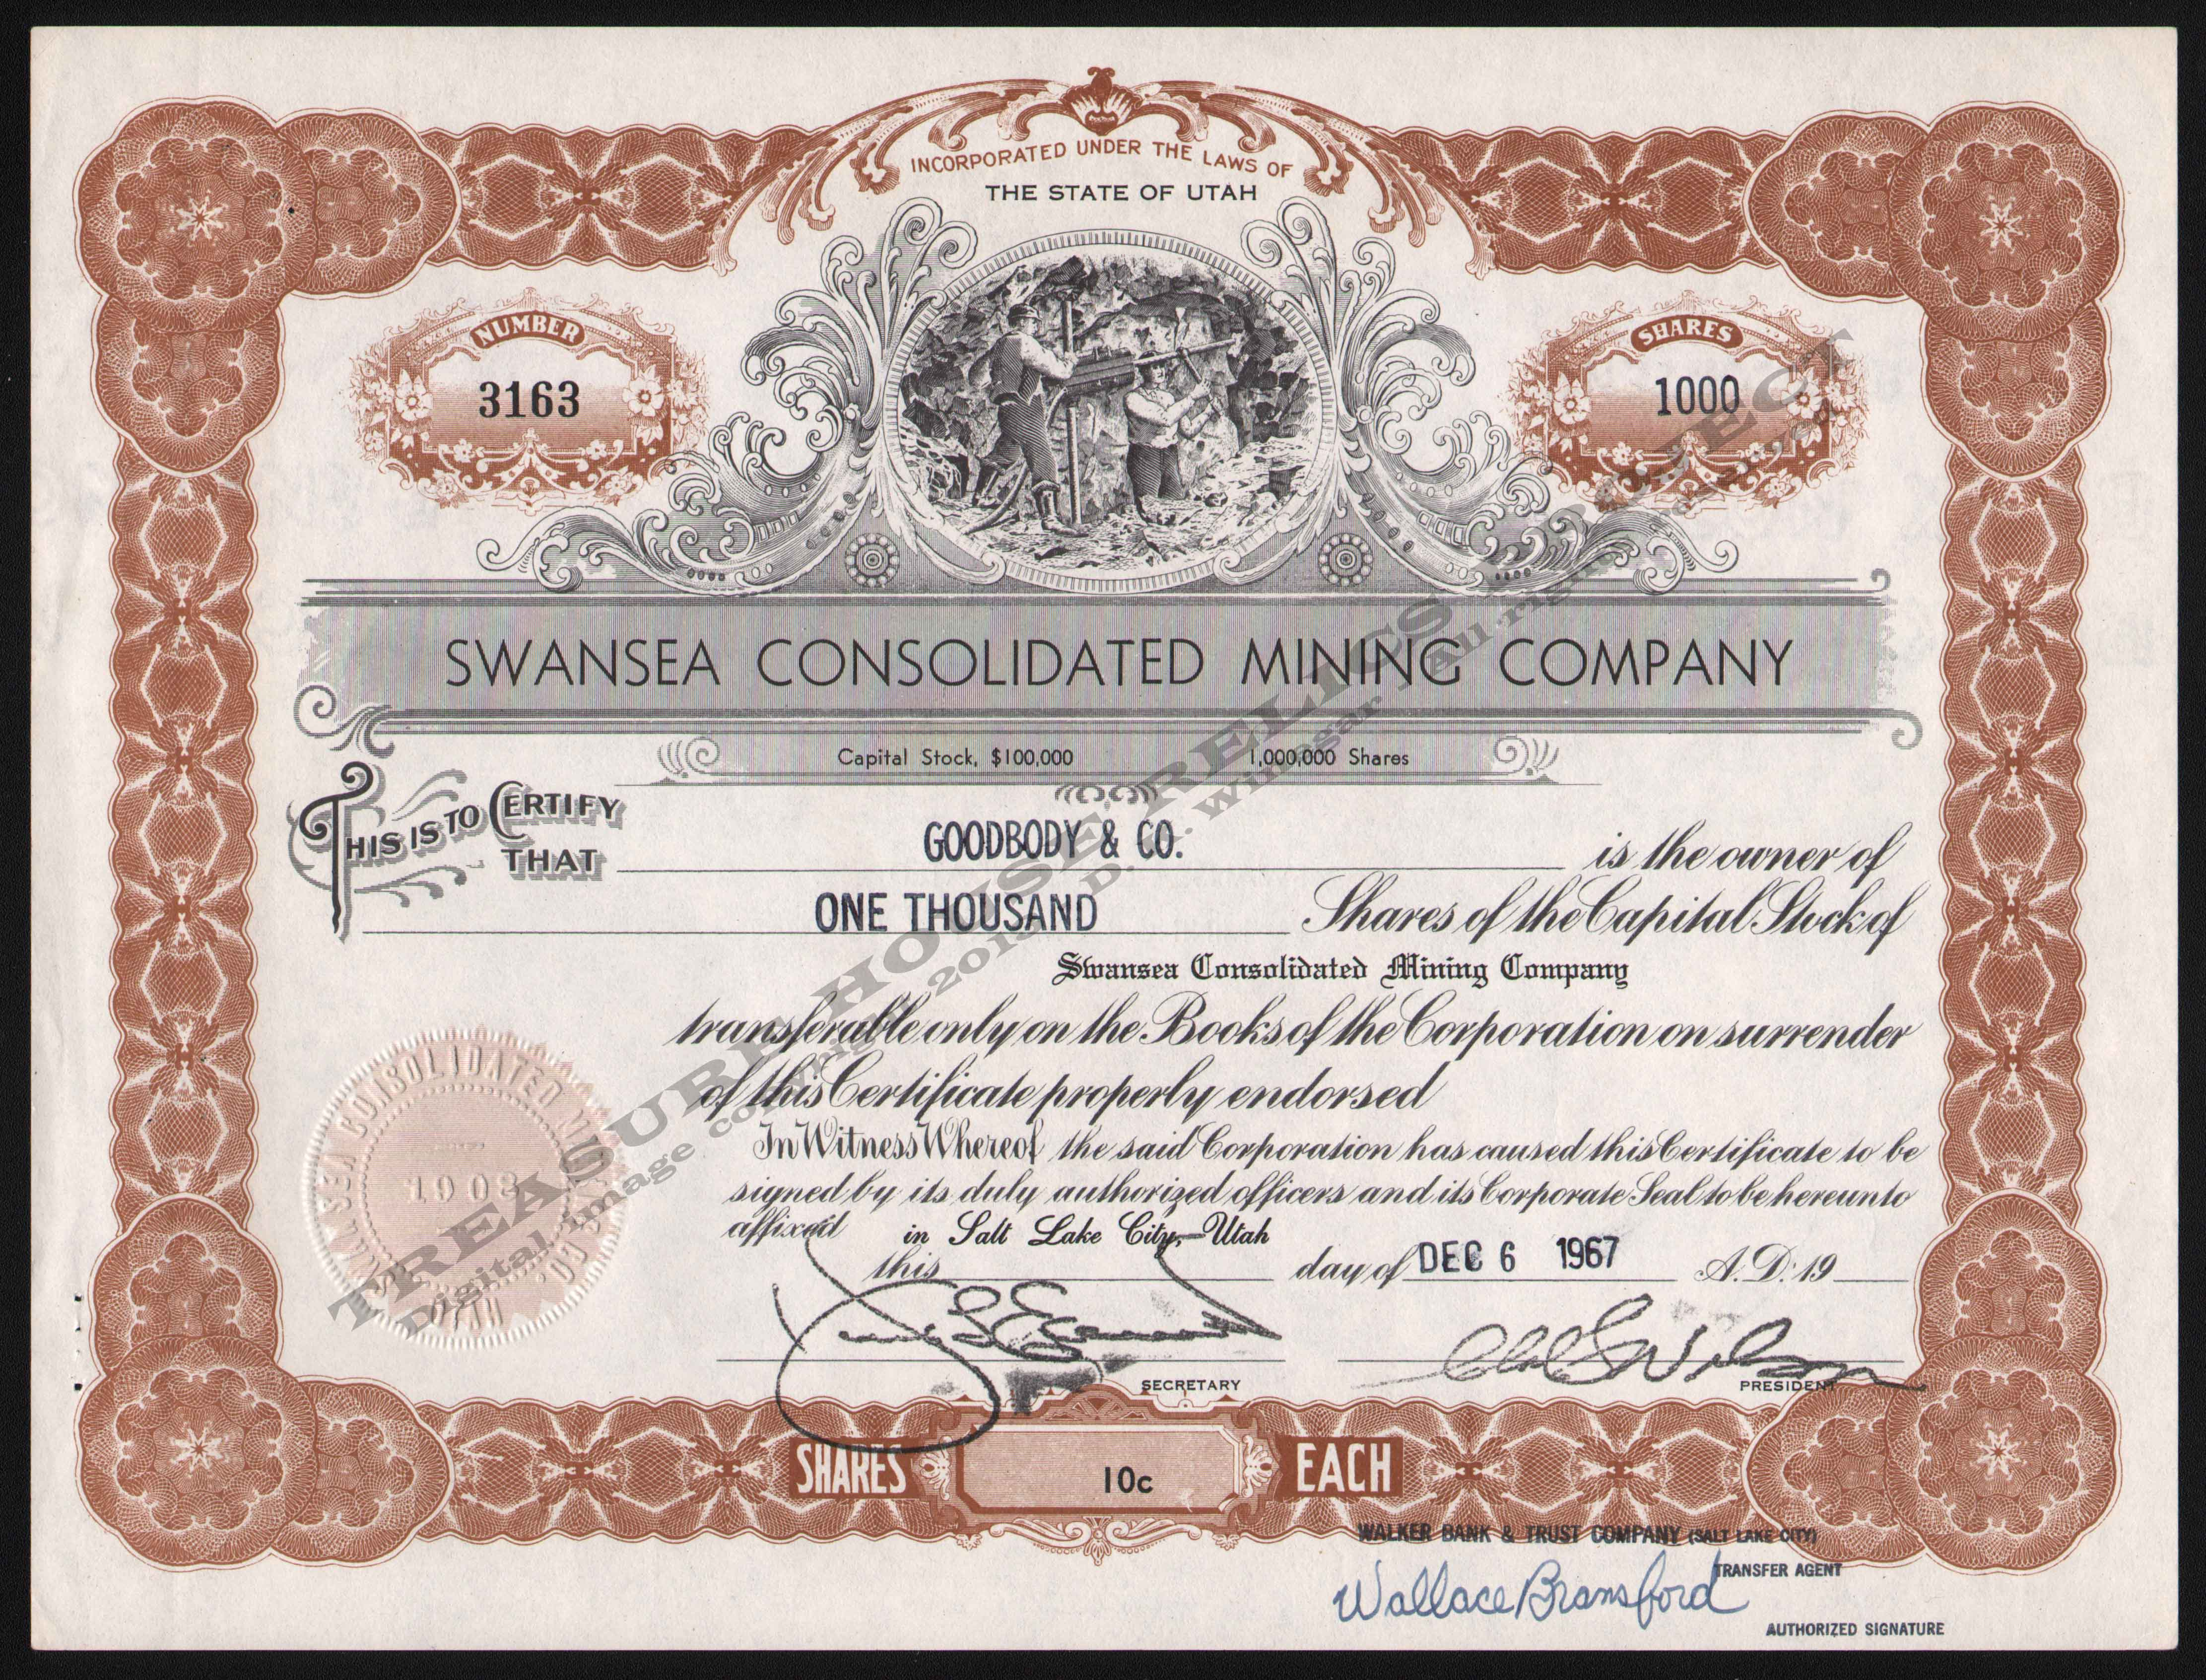 LETTERHEAD/SWANSEA_CONSOLIDATED_MINING_CO_3163_1967_GP_400_CROP_EMBOSS.jpg